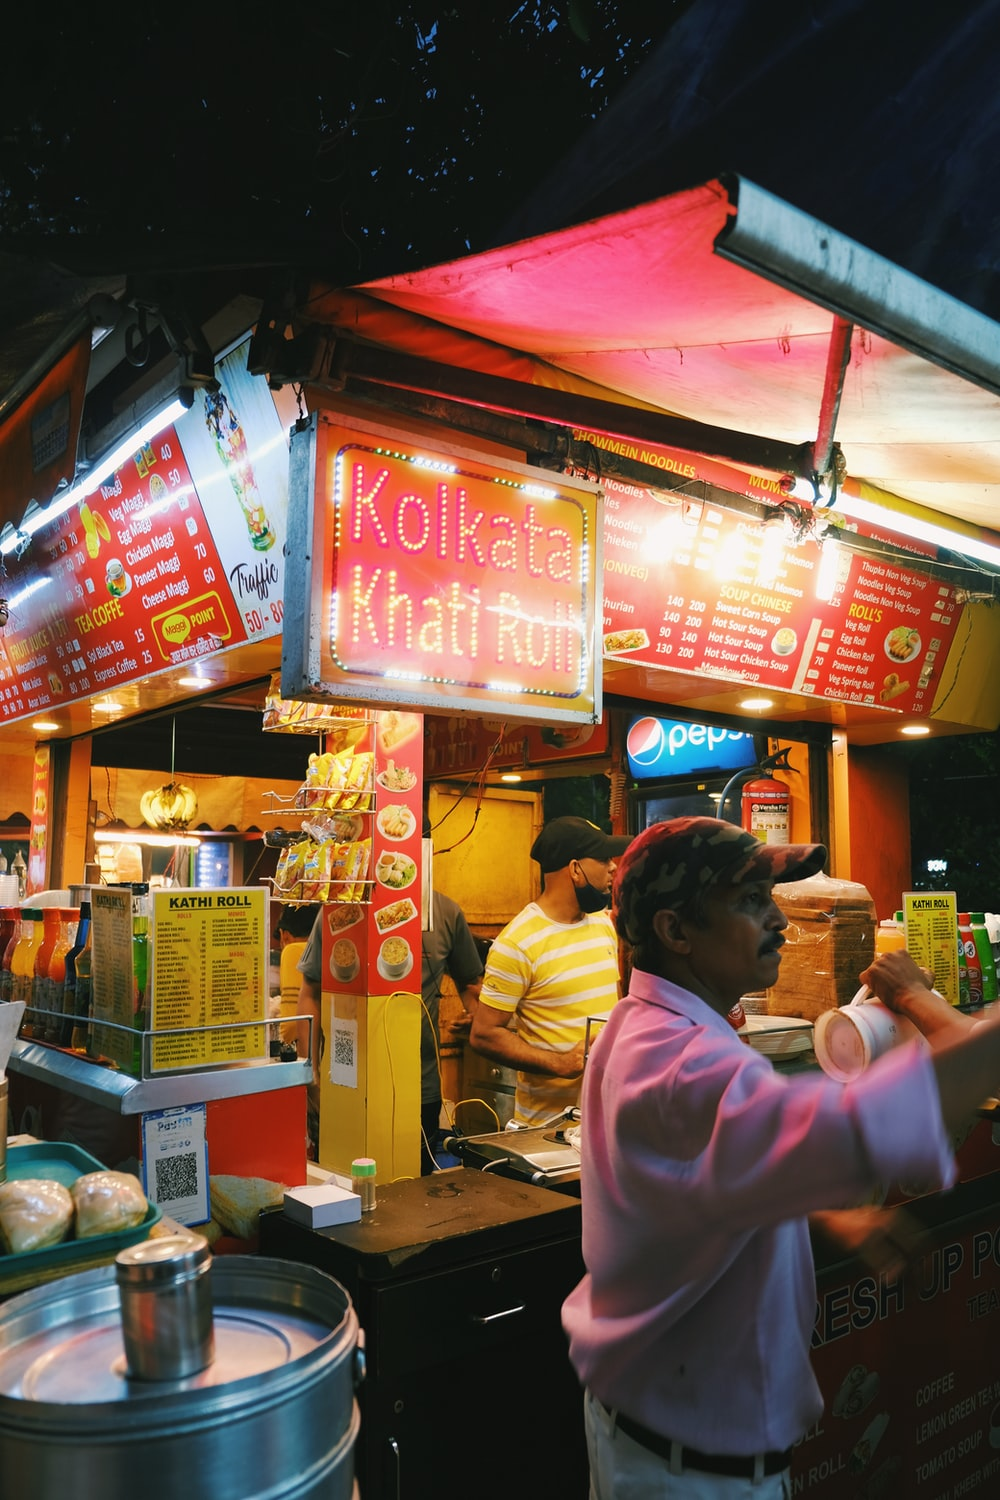 woman in pink shirt standing in front of food stall